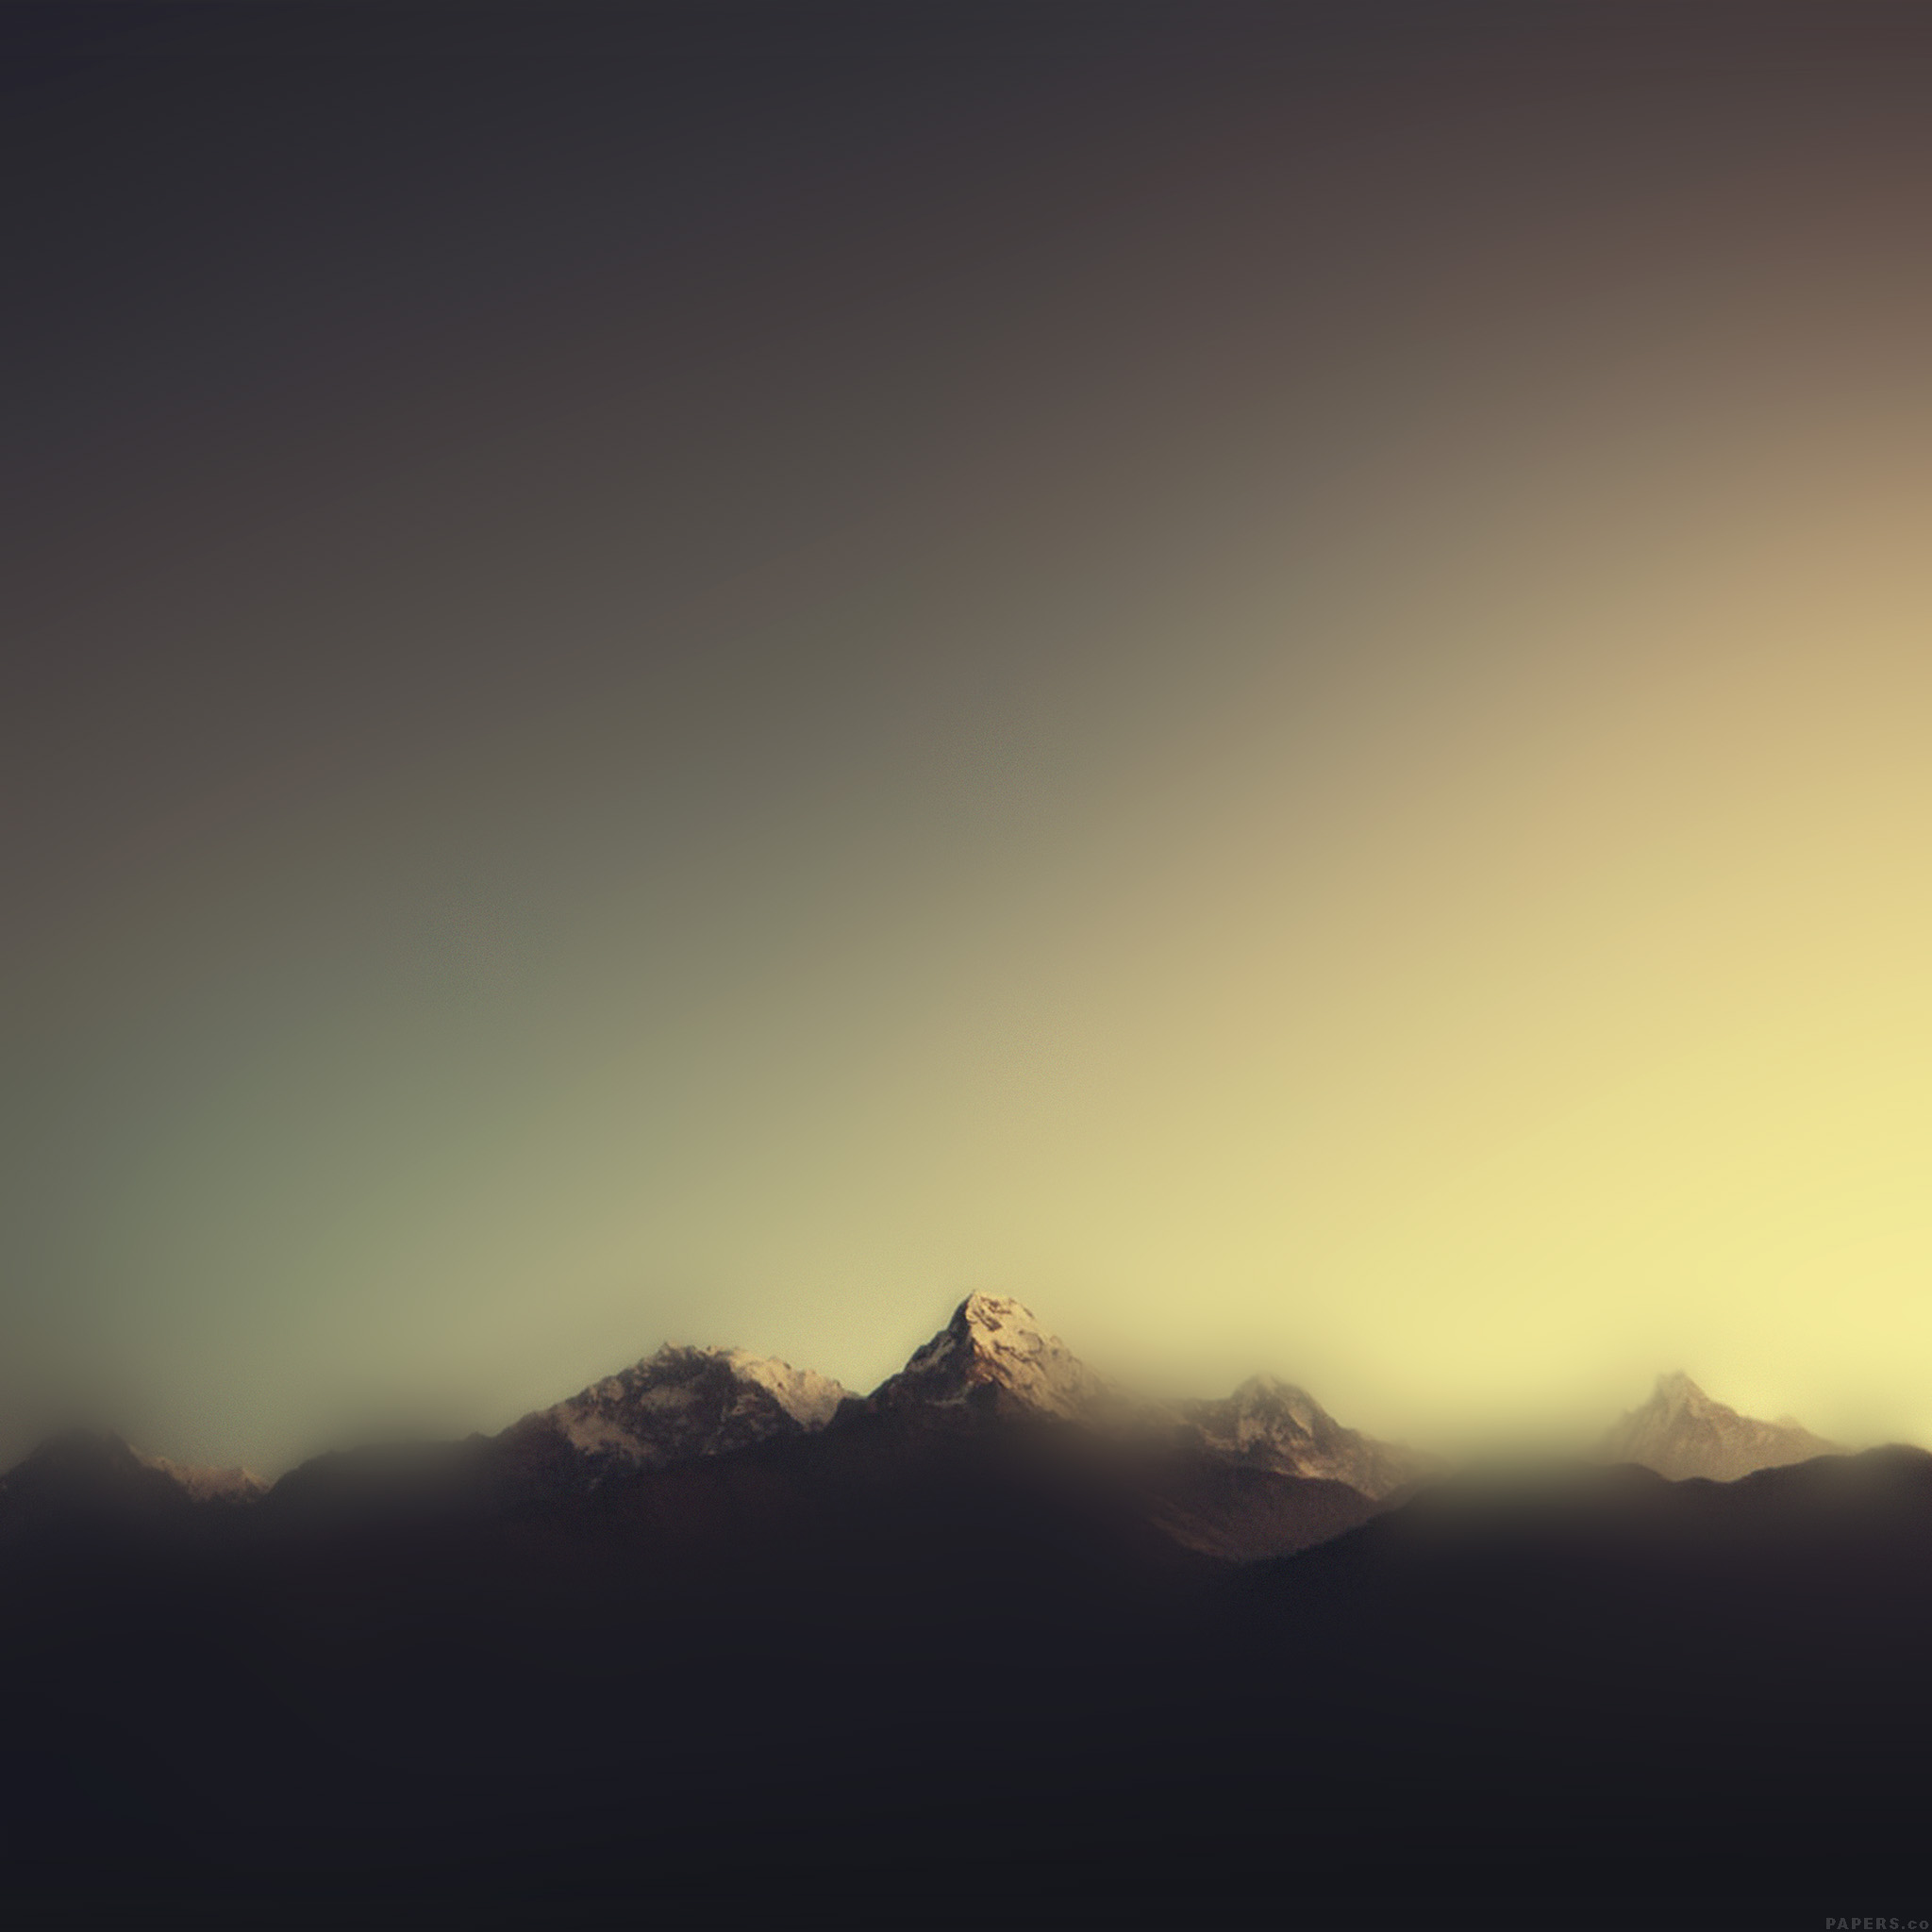 Wallpaper Iphone Minimalist: Ml07-mountain-blur-minimal-nature